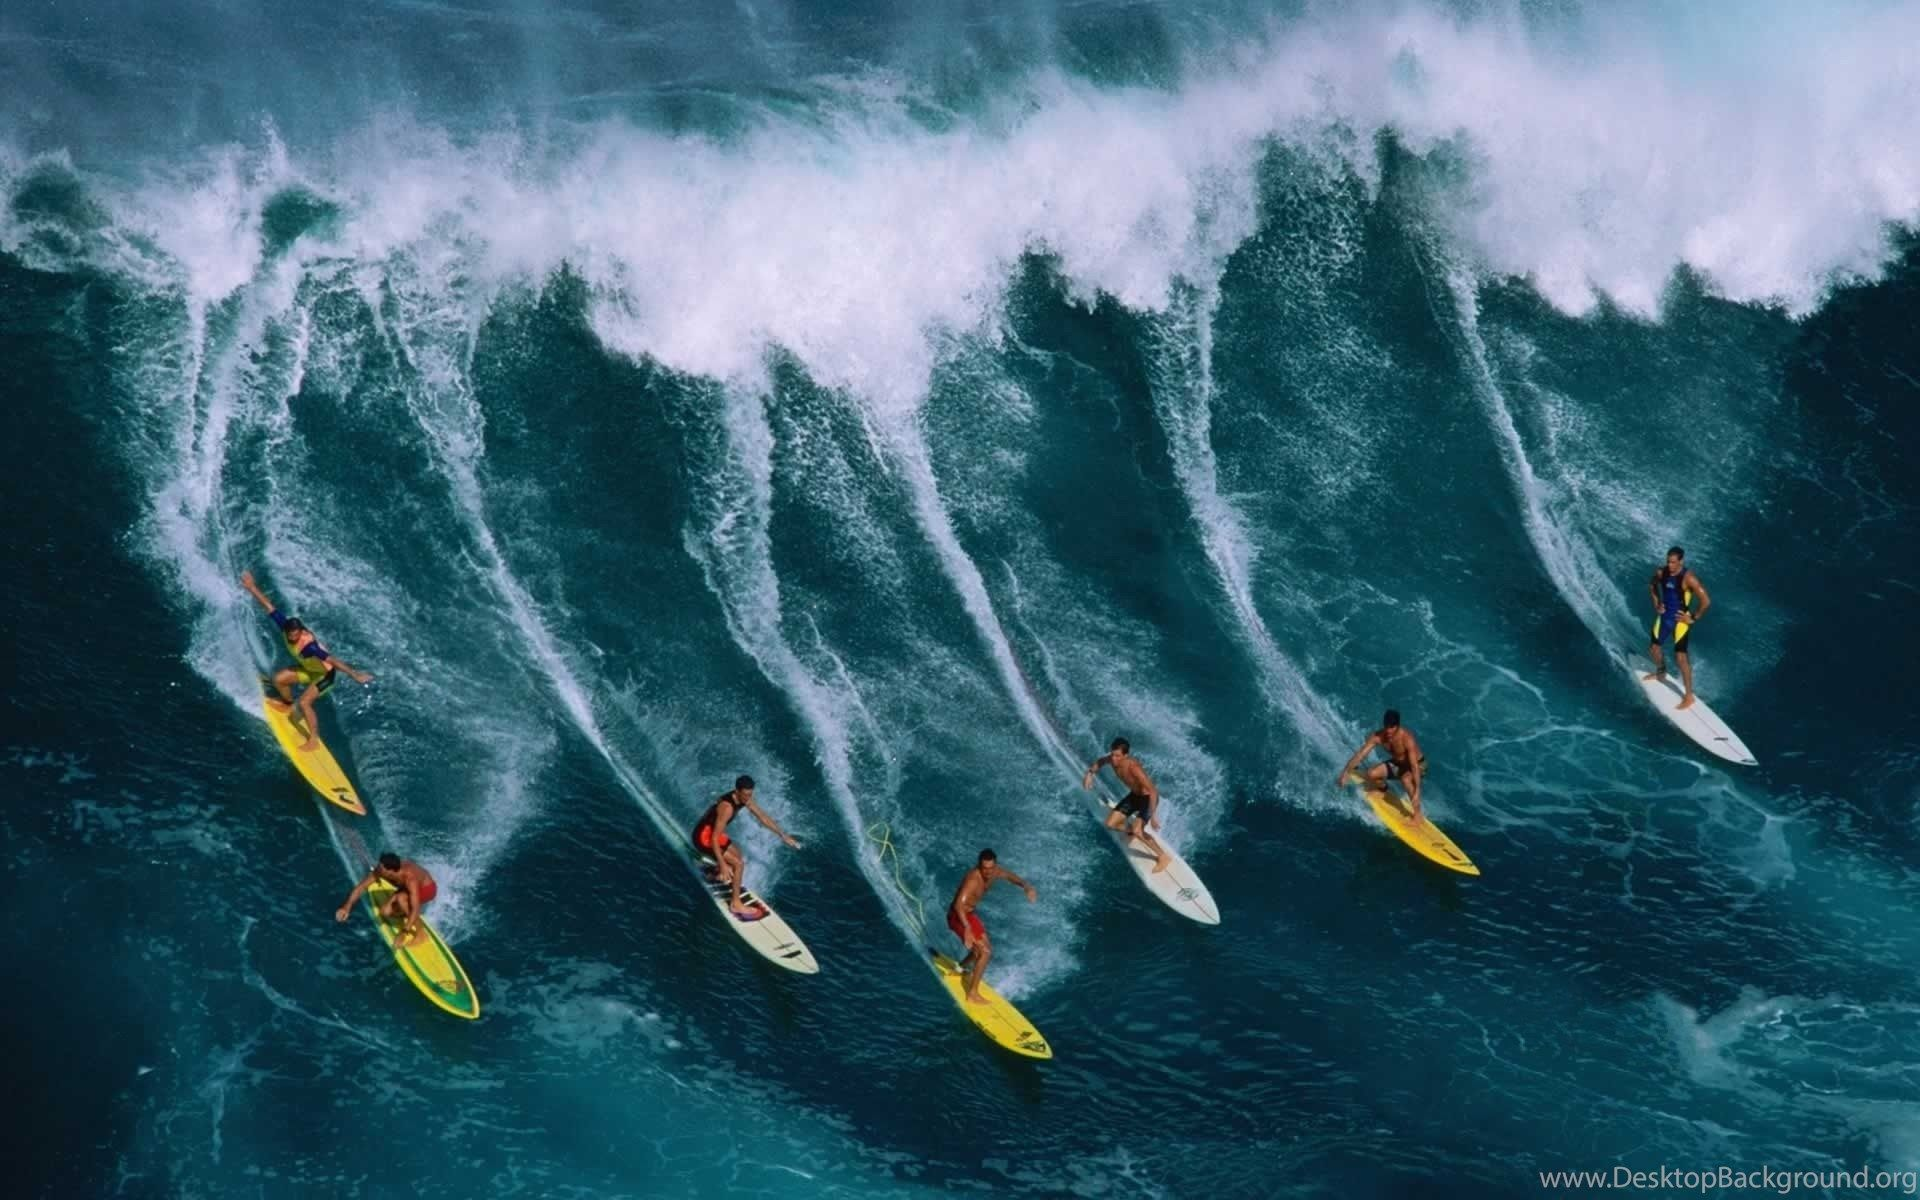 1920x1200 Surf Surfing Desktop Wallpaper, Surfing Pictures, New Wallpapers